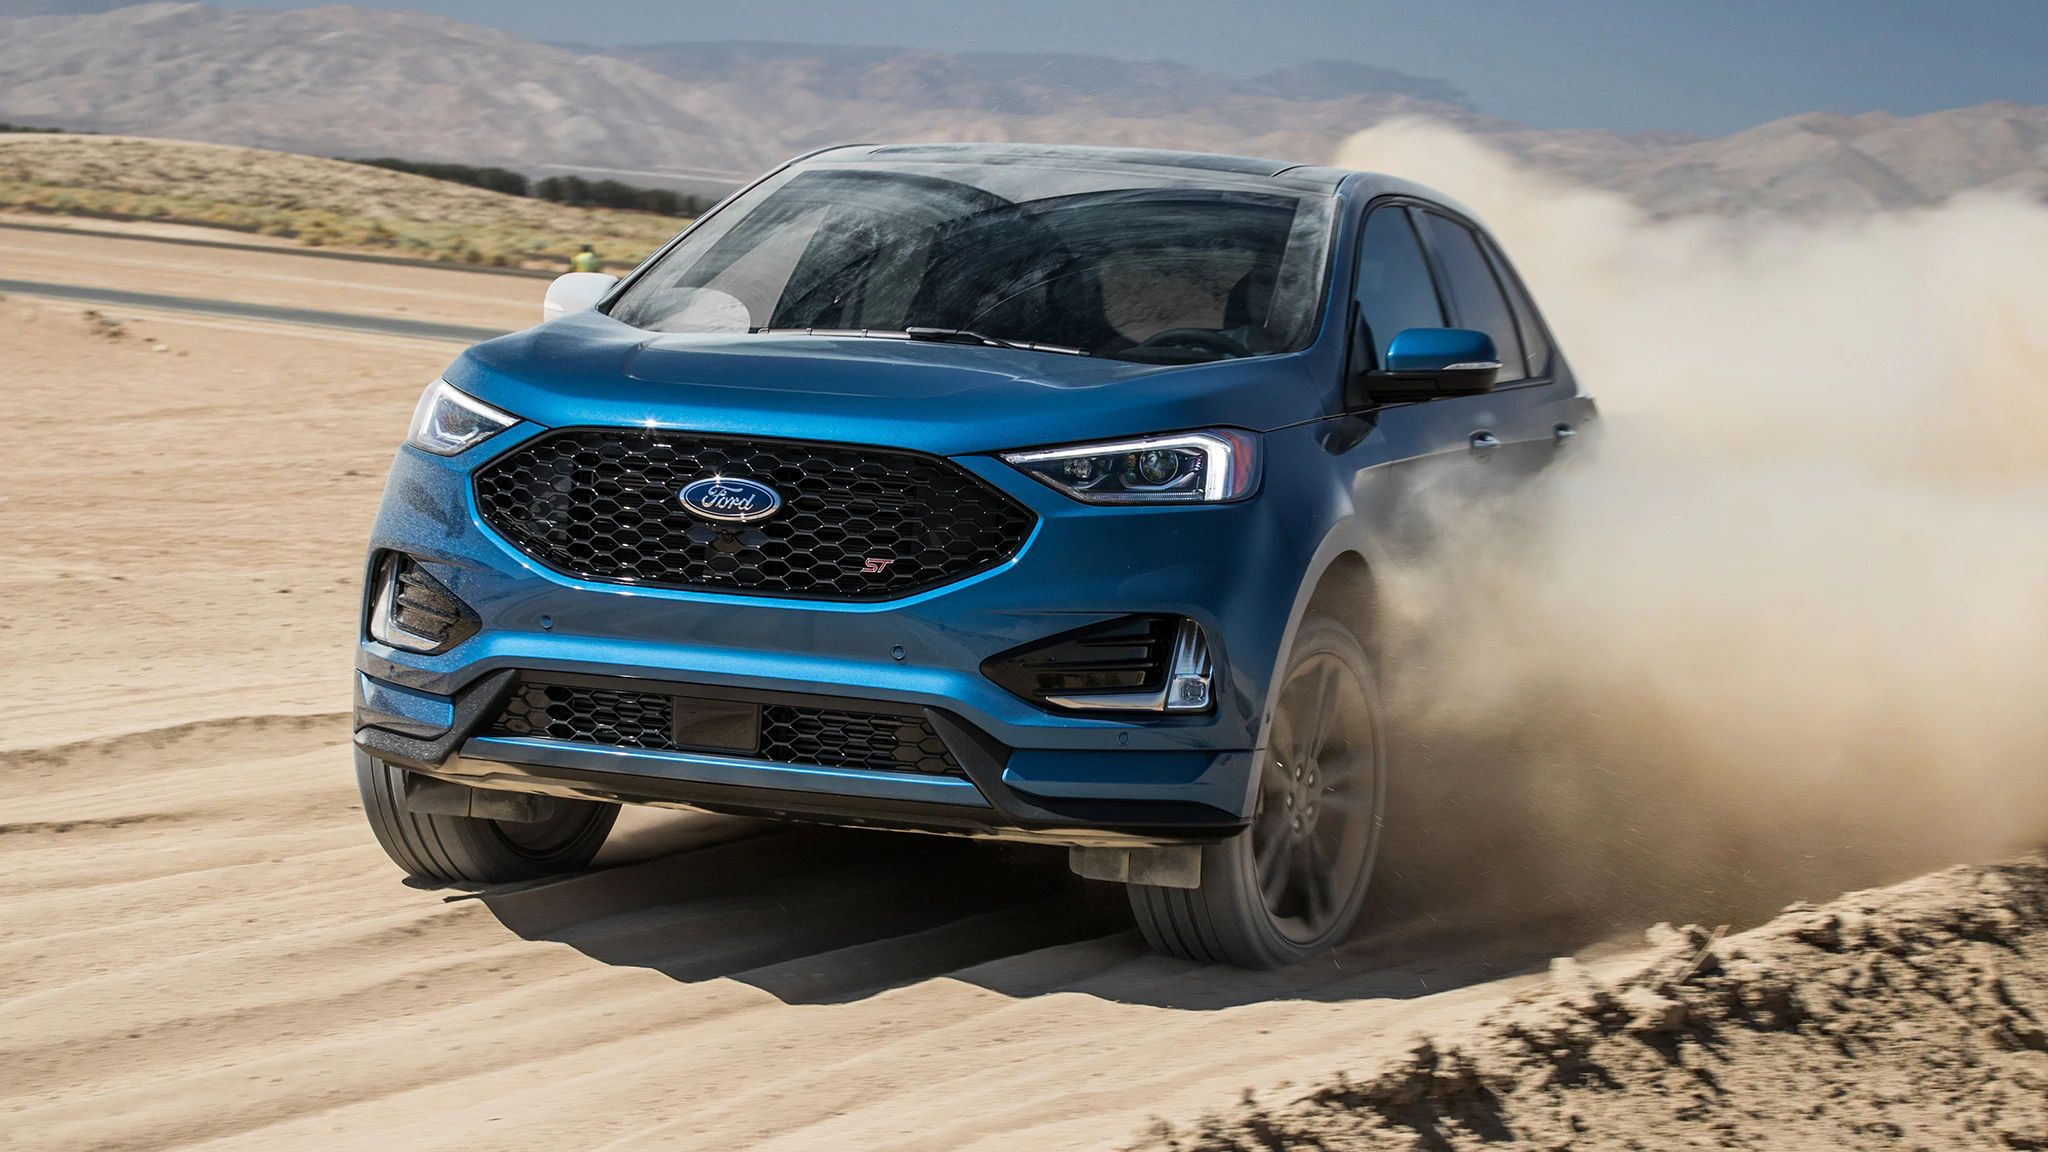 2021 Ford Edge St Review Features Price Performance Mpg And Rivals Compared Ford Edge Ford Suv Prices